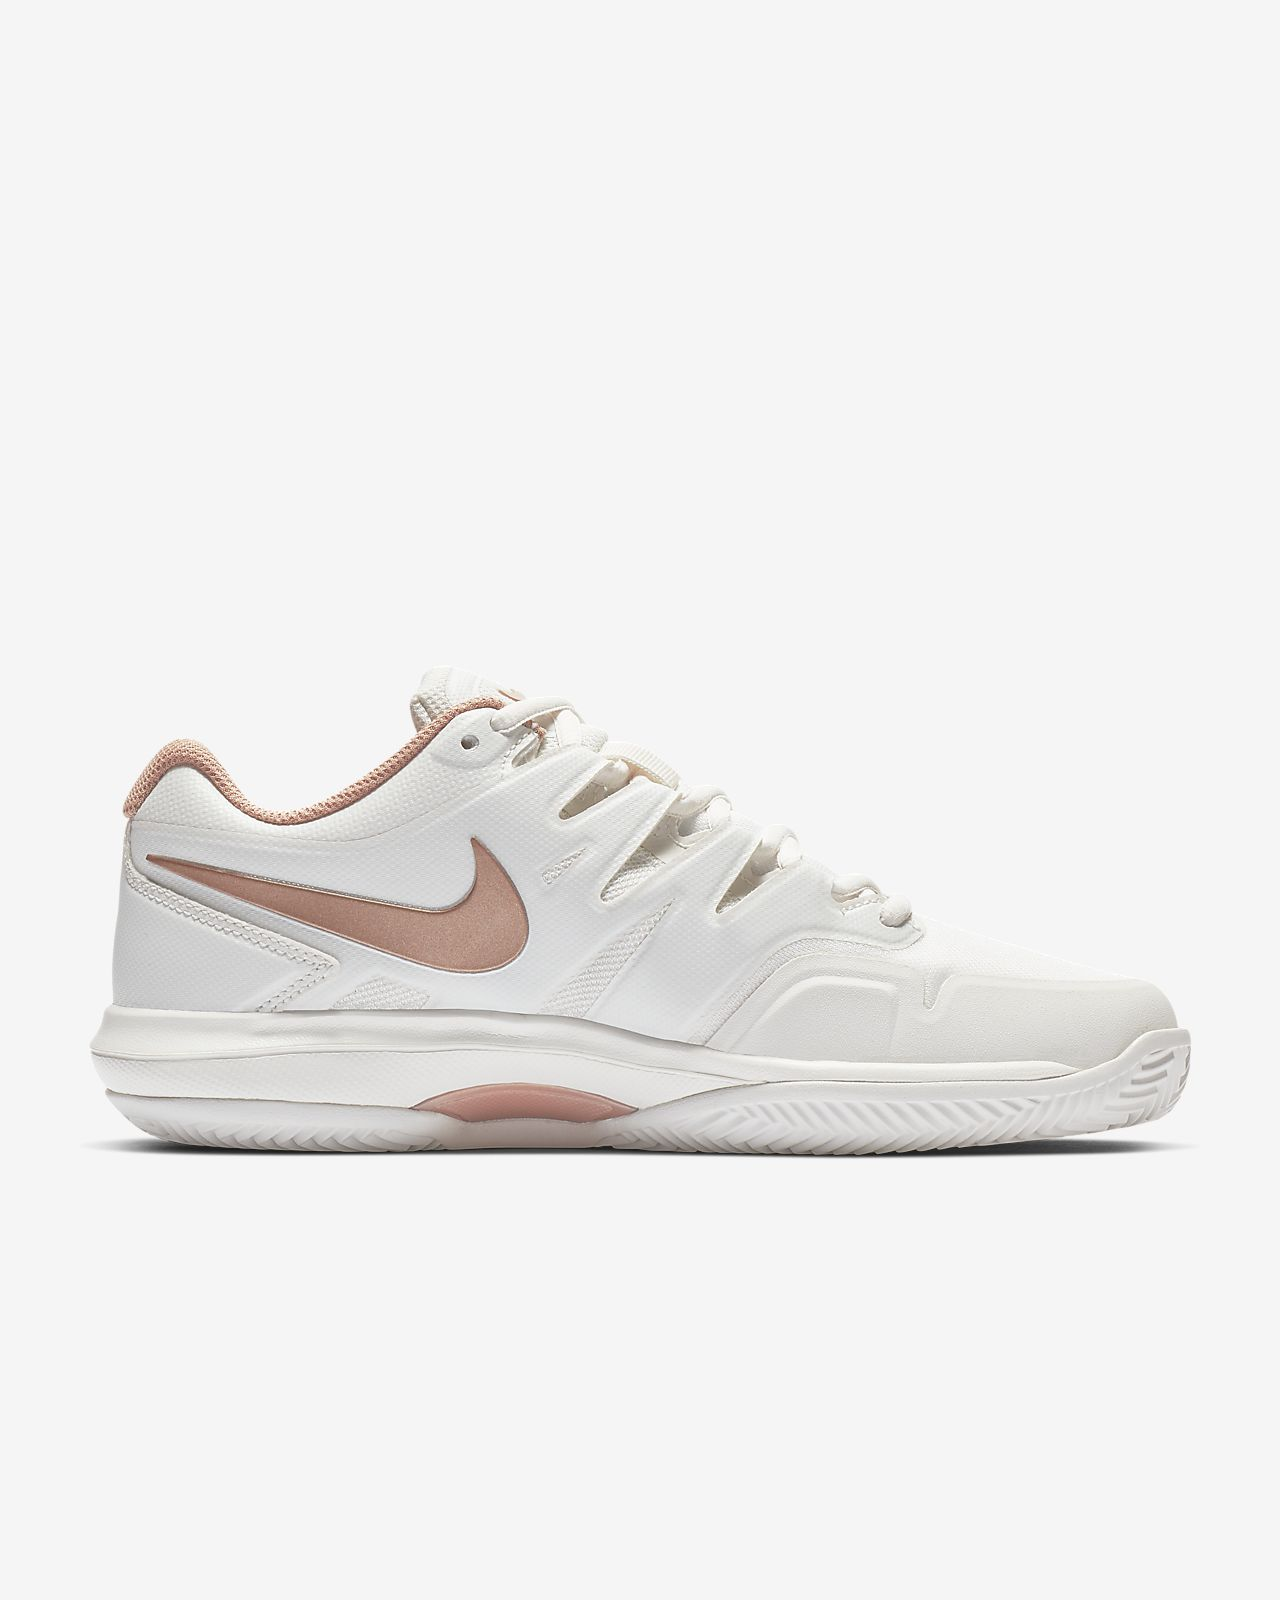 3b961bde9c9 Nike Air Zoom Prestige Clay Women s Tennis Shoe. Nike.com AU